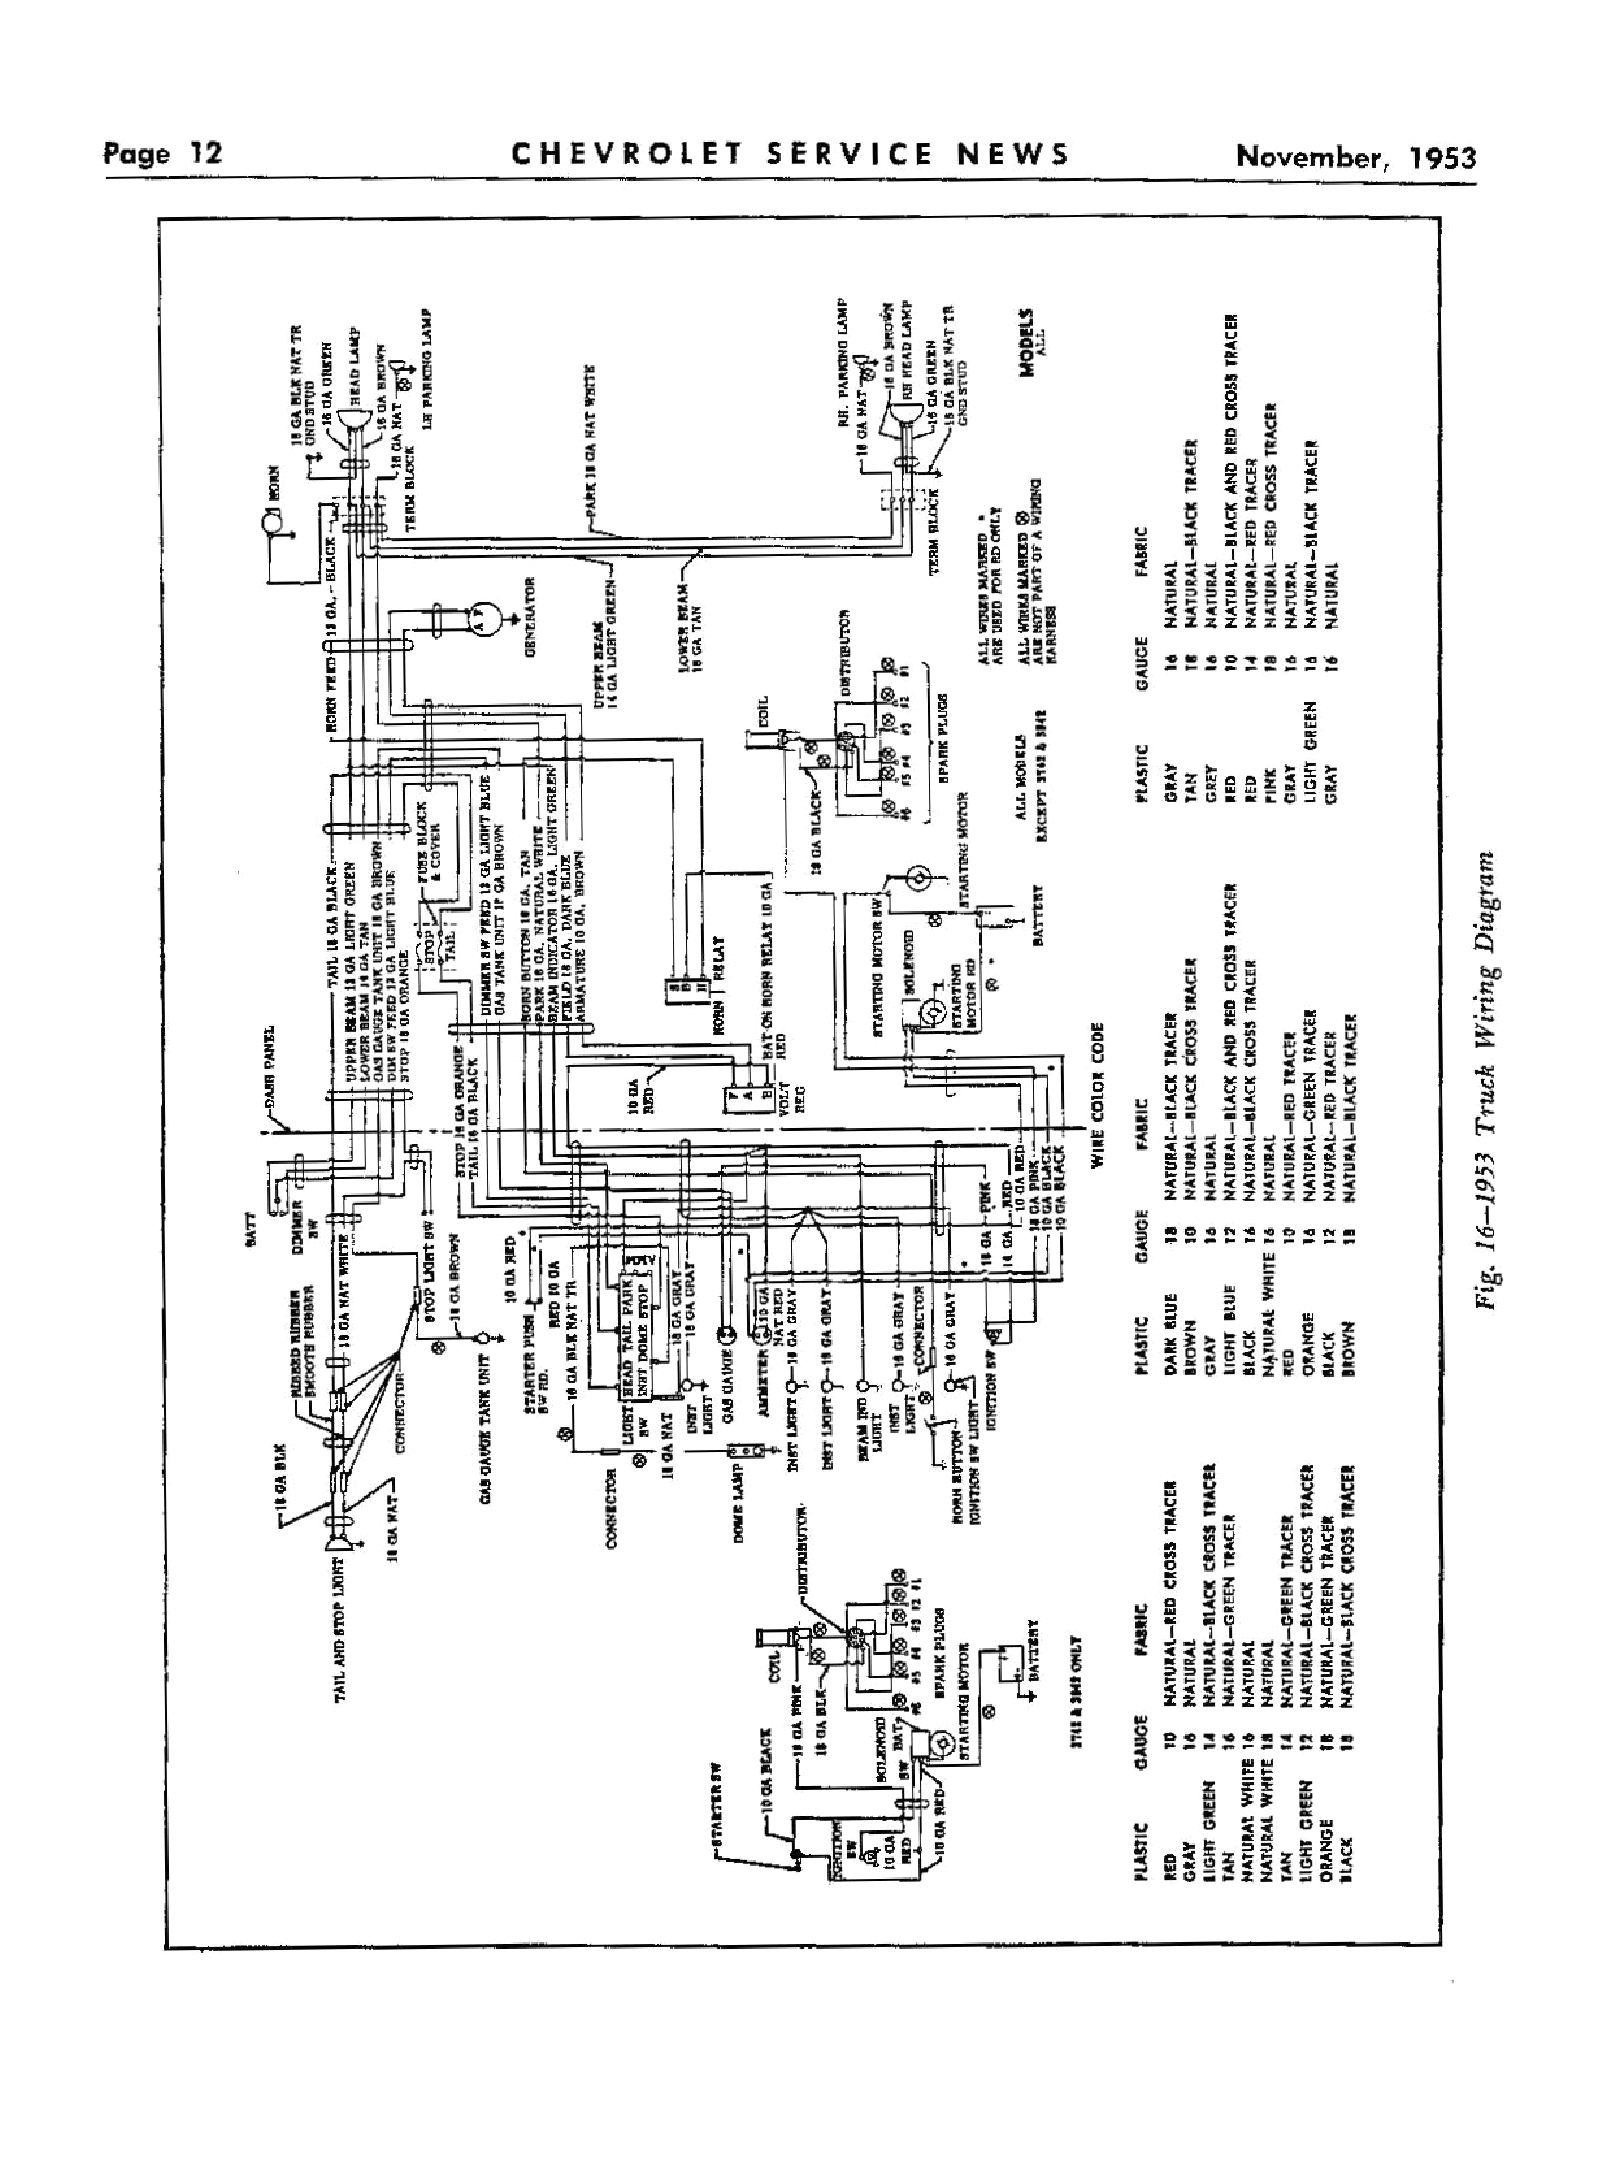 hight resolution of 1951 chevy car fleetline wire diagram wiring diagram sample 1951 chevrolet wiring diagrams 1951 chevrolet wiring diagram